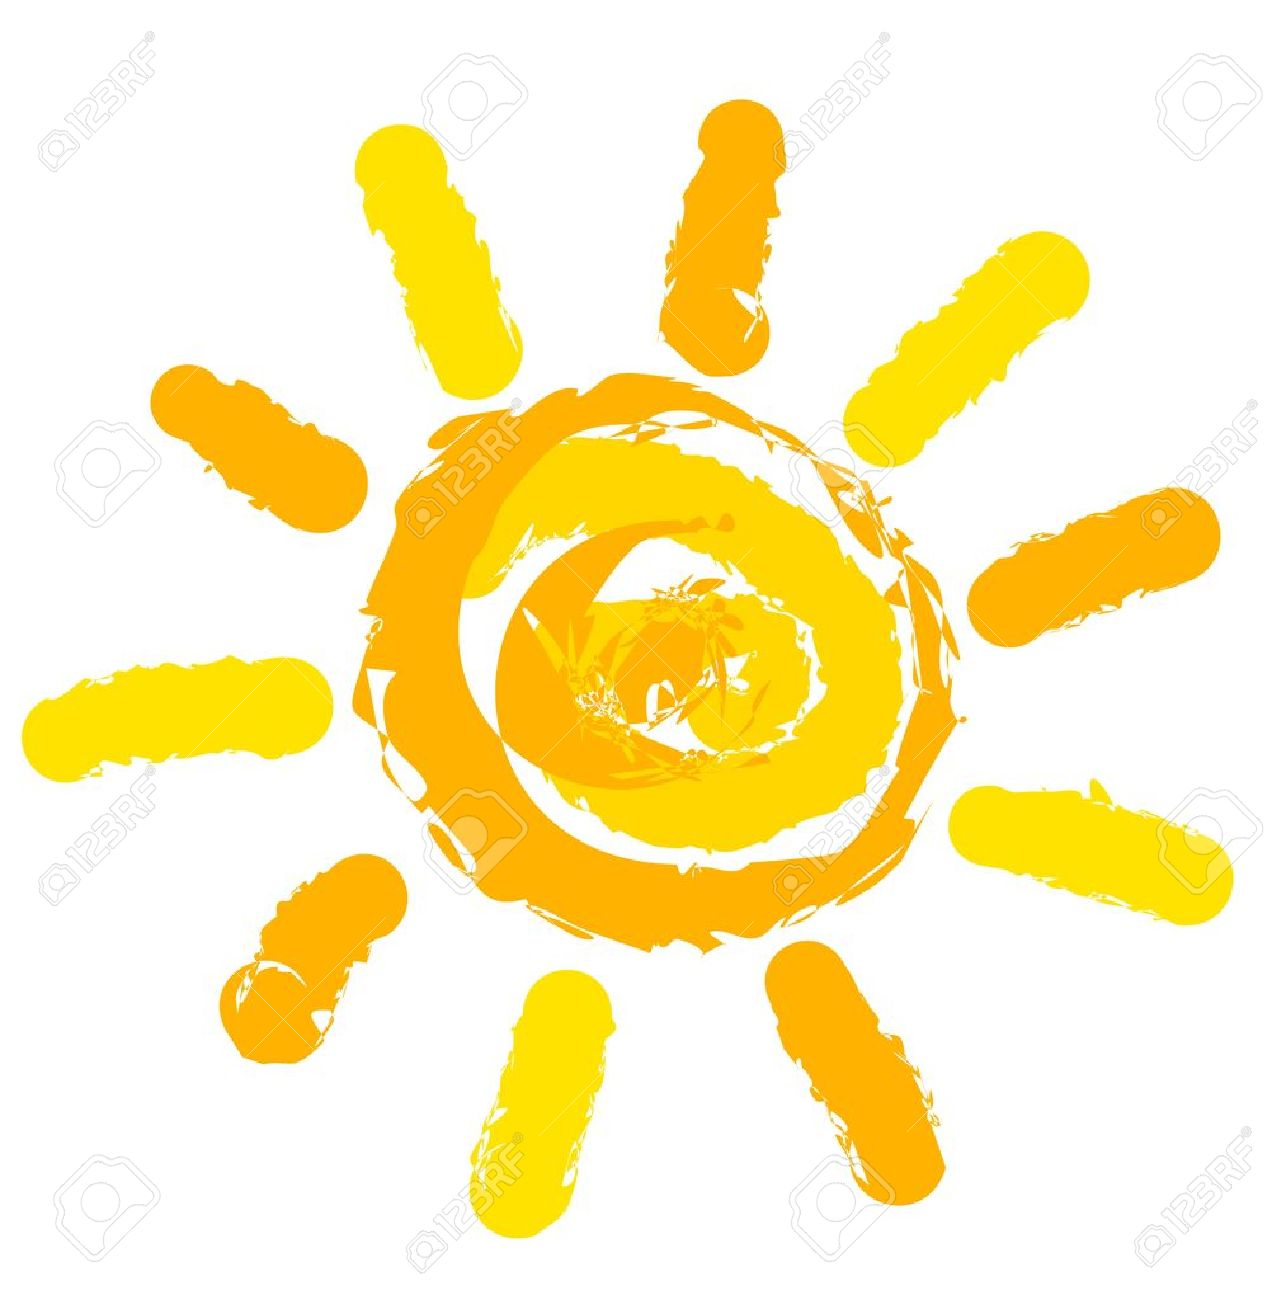 sun symbol illustration royalty free cliparts vectors and stock rh 123rf com vector sun vector sunflower images